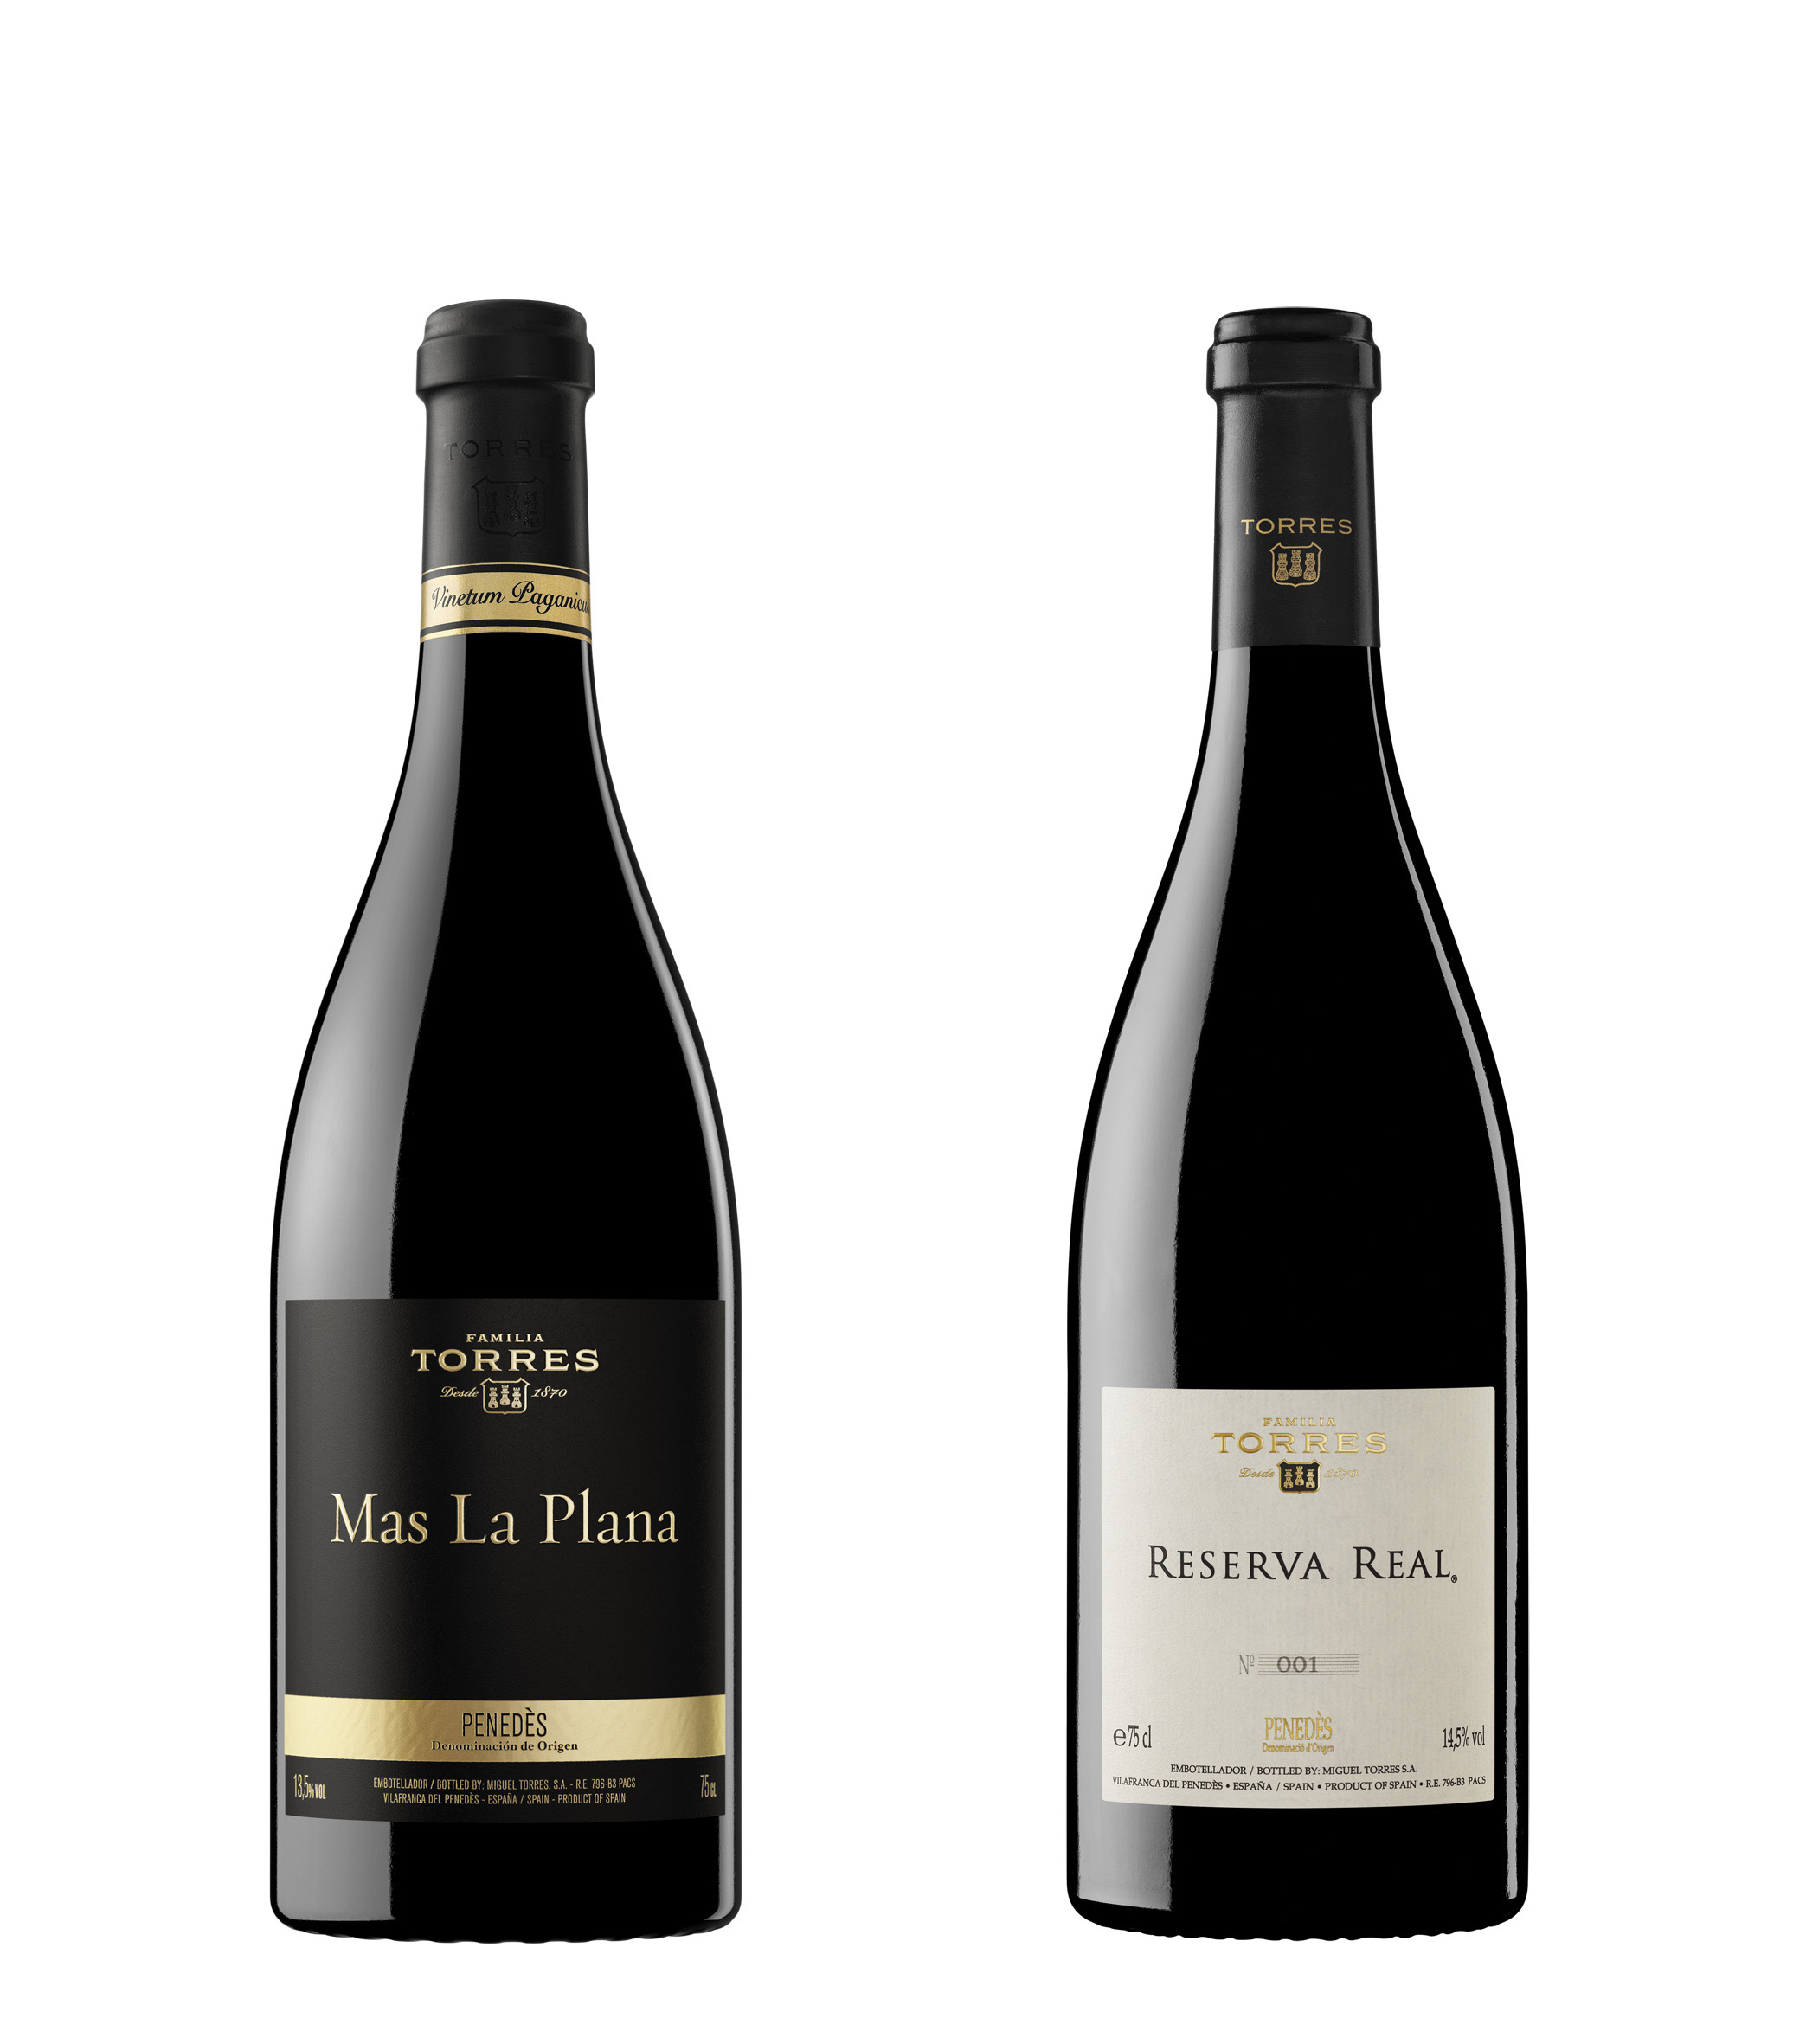 El vino Mas La Plana 2012 de la Familia Torres brilla en los Decanter World Wine Awards